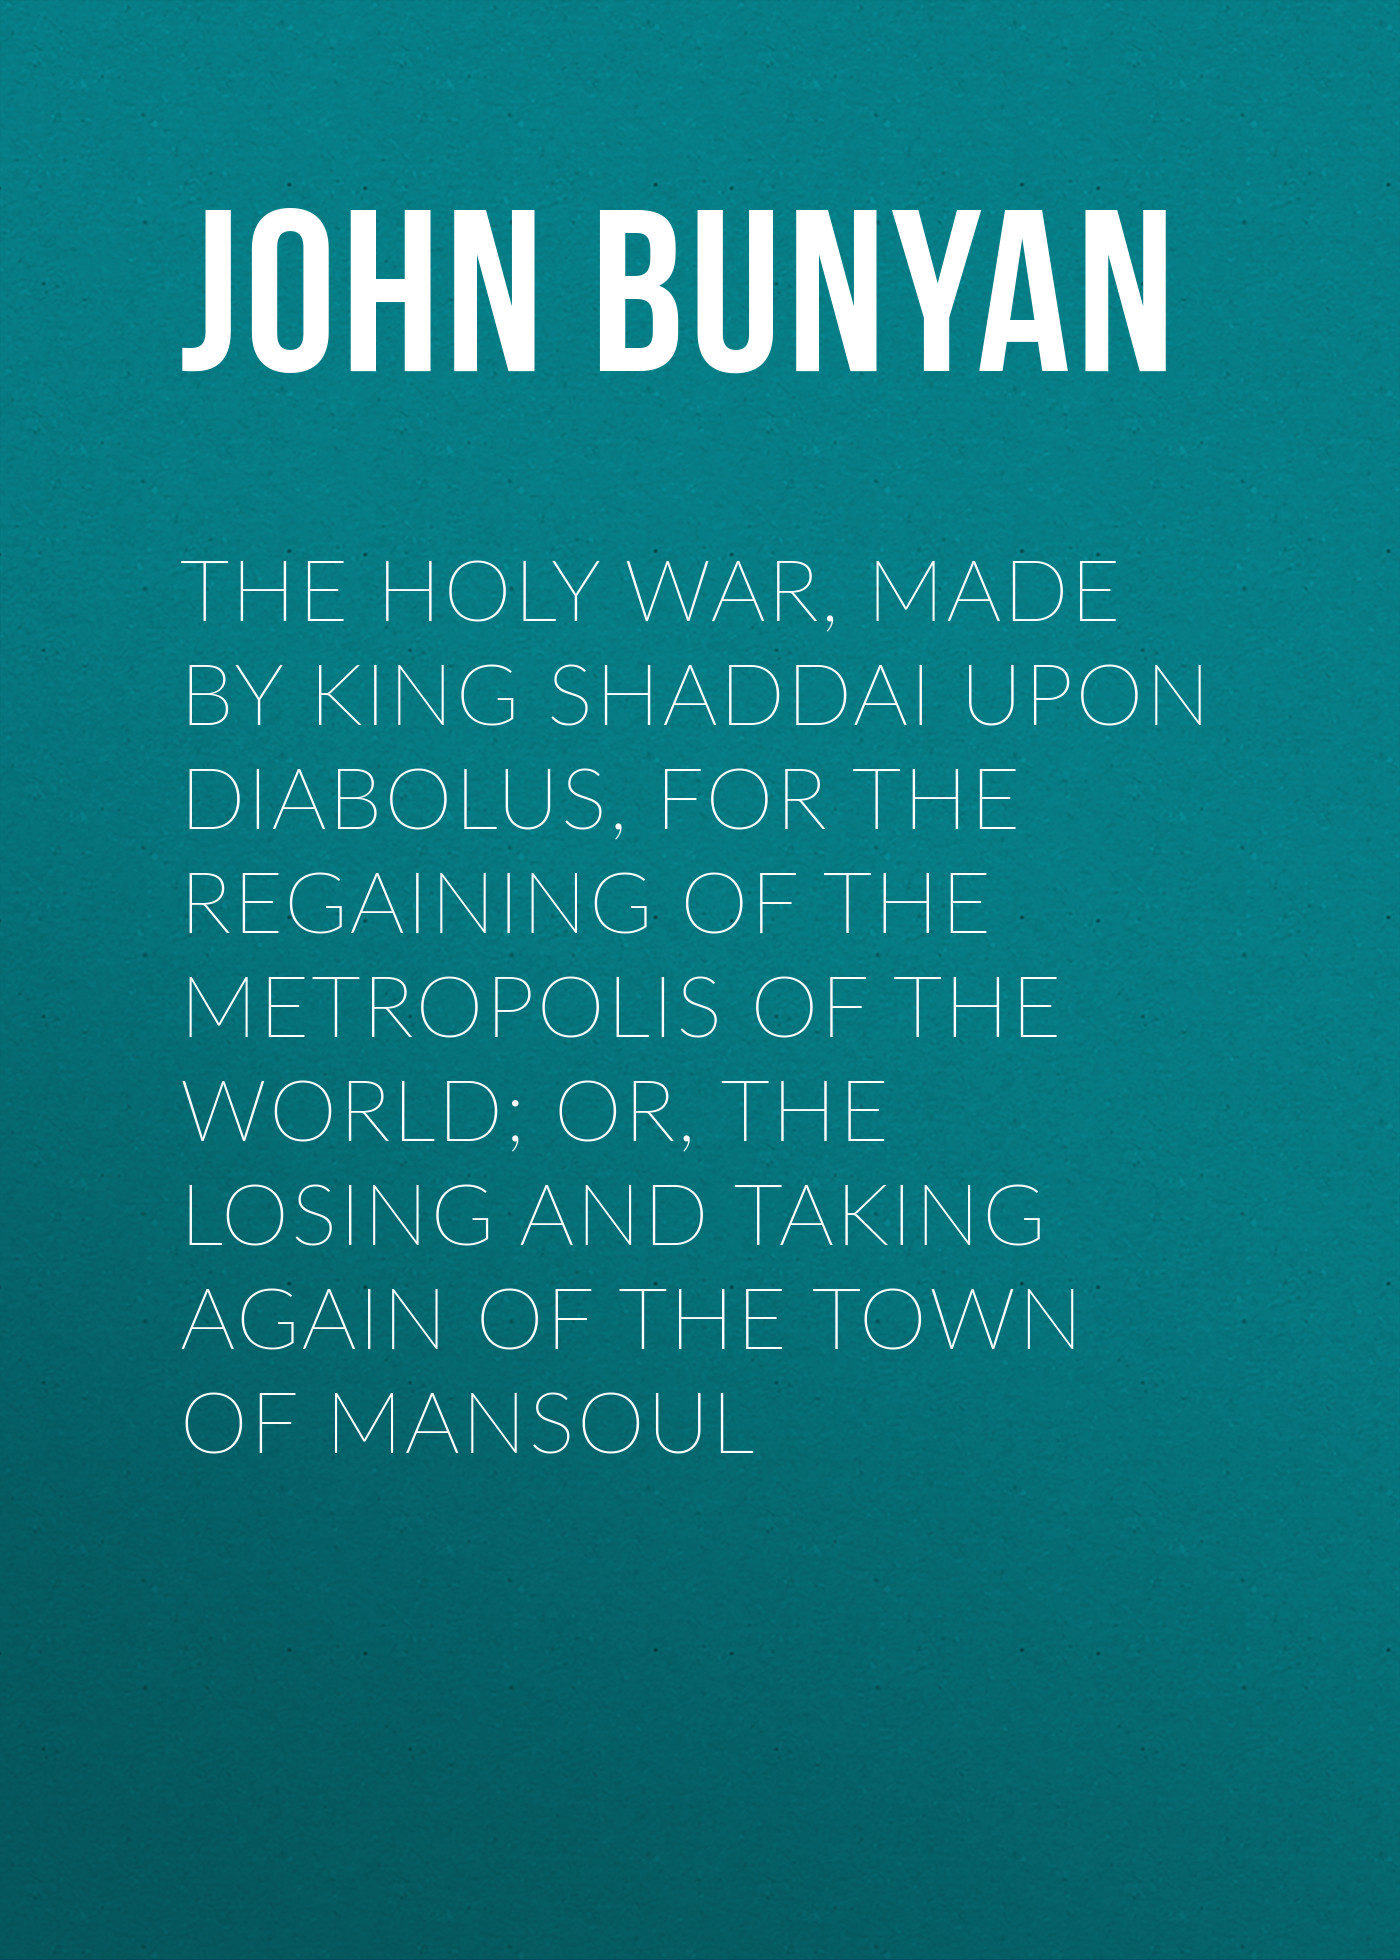 John Bunyan The Holy War, Made by King Shaddai Upon Diabolus, for the Regaining of the Metropolis of the World; Or, The Losing and Taking Again of the Town of Mansoul елена качур как устроен человек энциклопедии с чевостиком